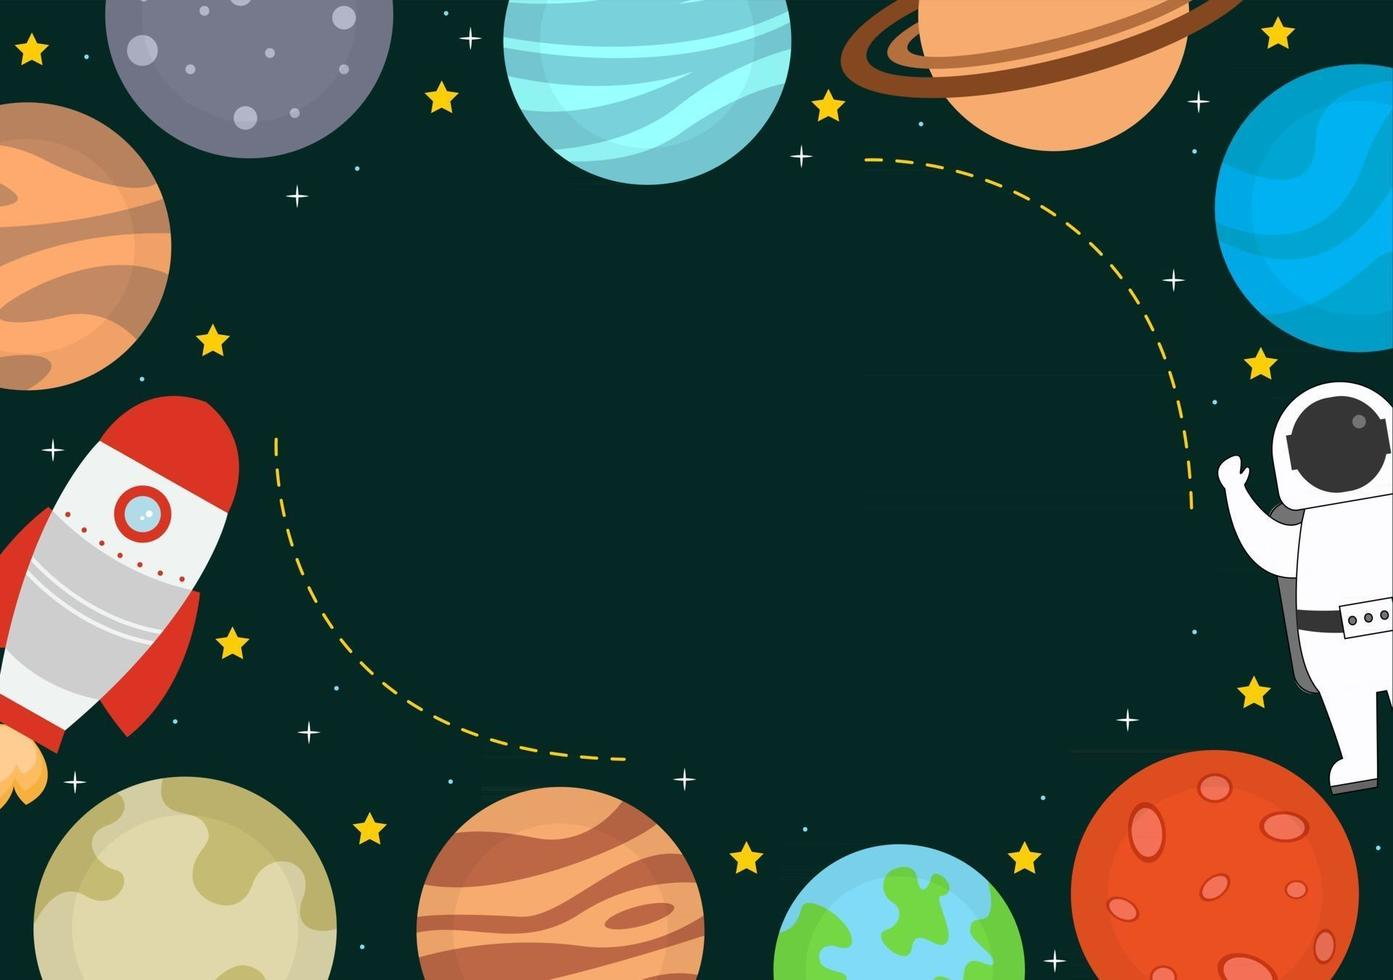 Astronaut With Rocket Background Illustration For Explore In Outer Space vector